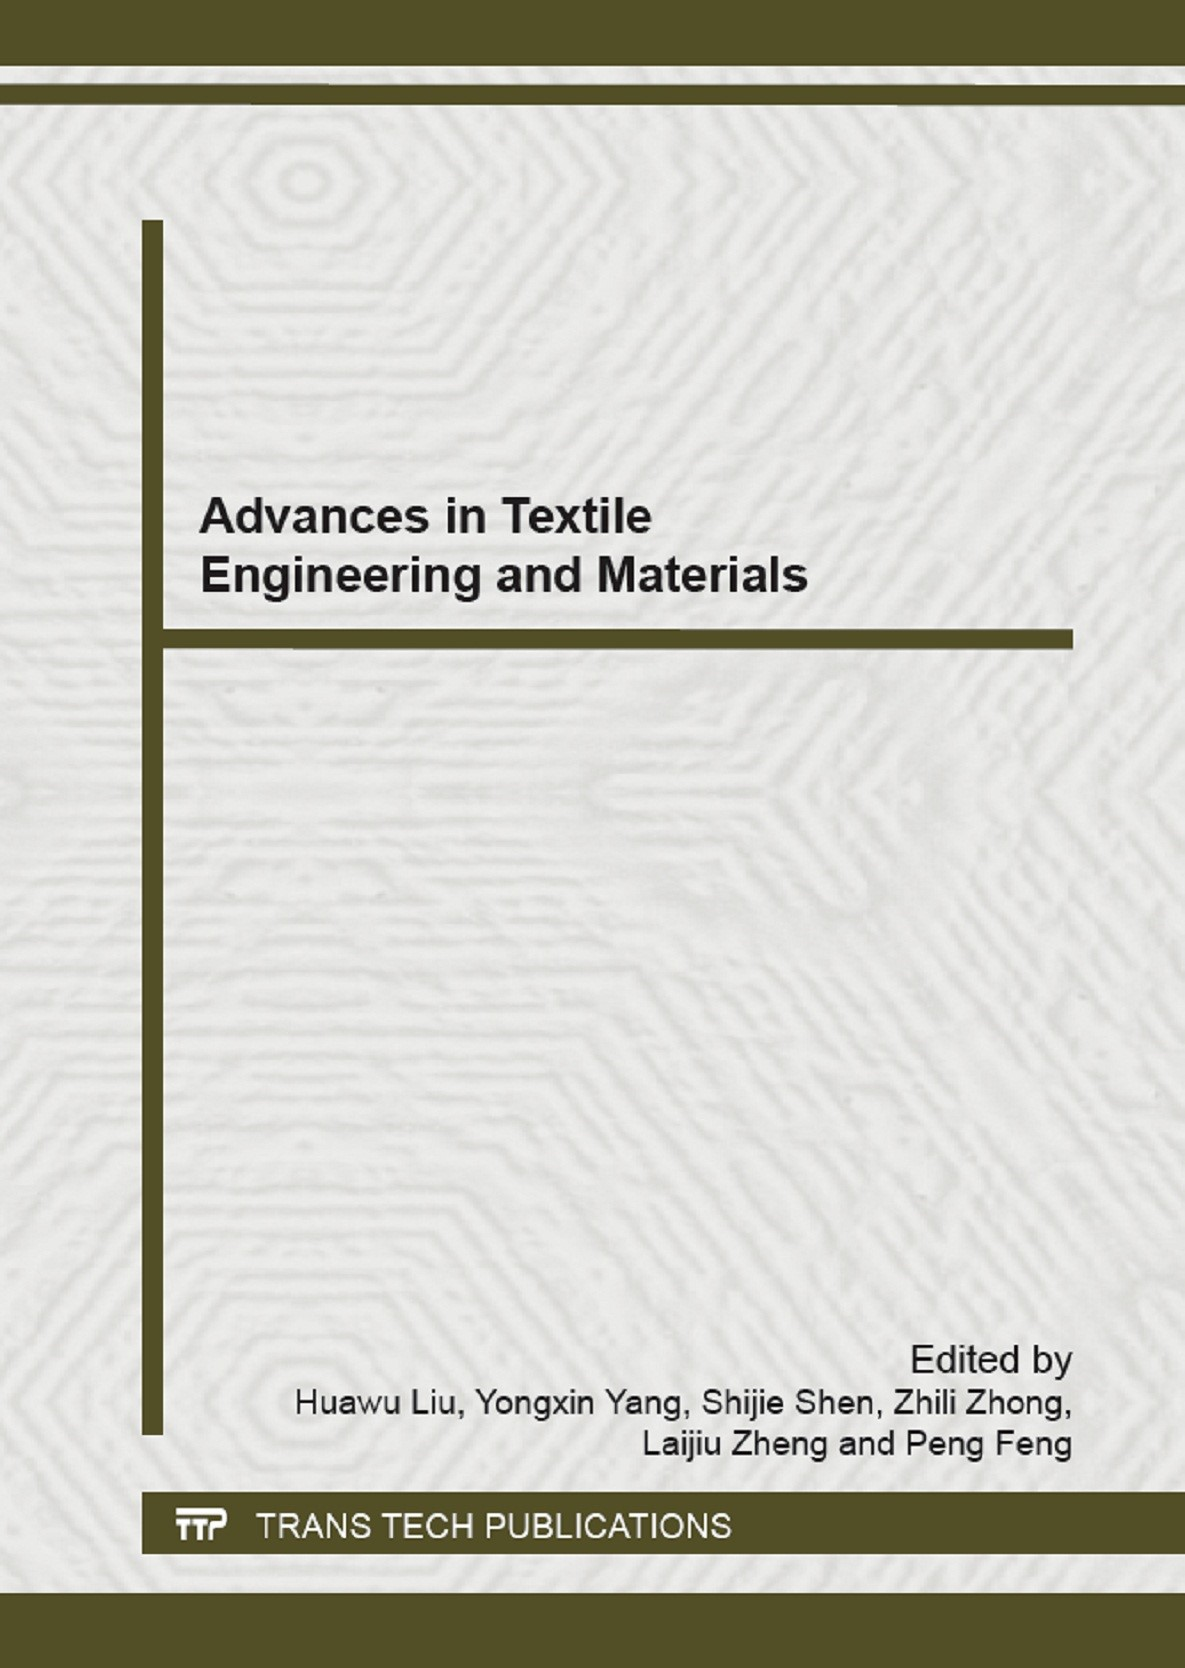 Advances in Textile Engineering and Materials | Liu / Yang / Shen / Zhong / Zheng / Feng, 2013 | Buch (Cover)